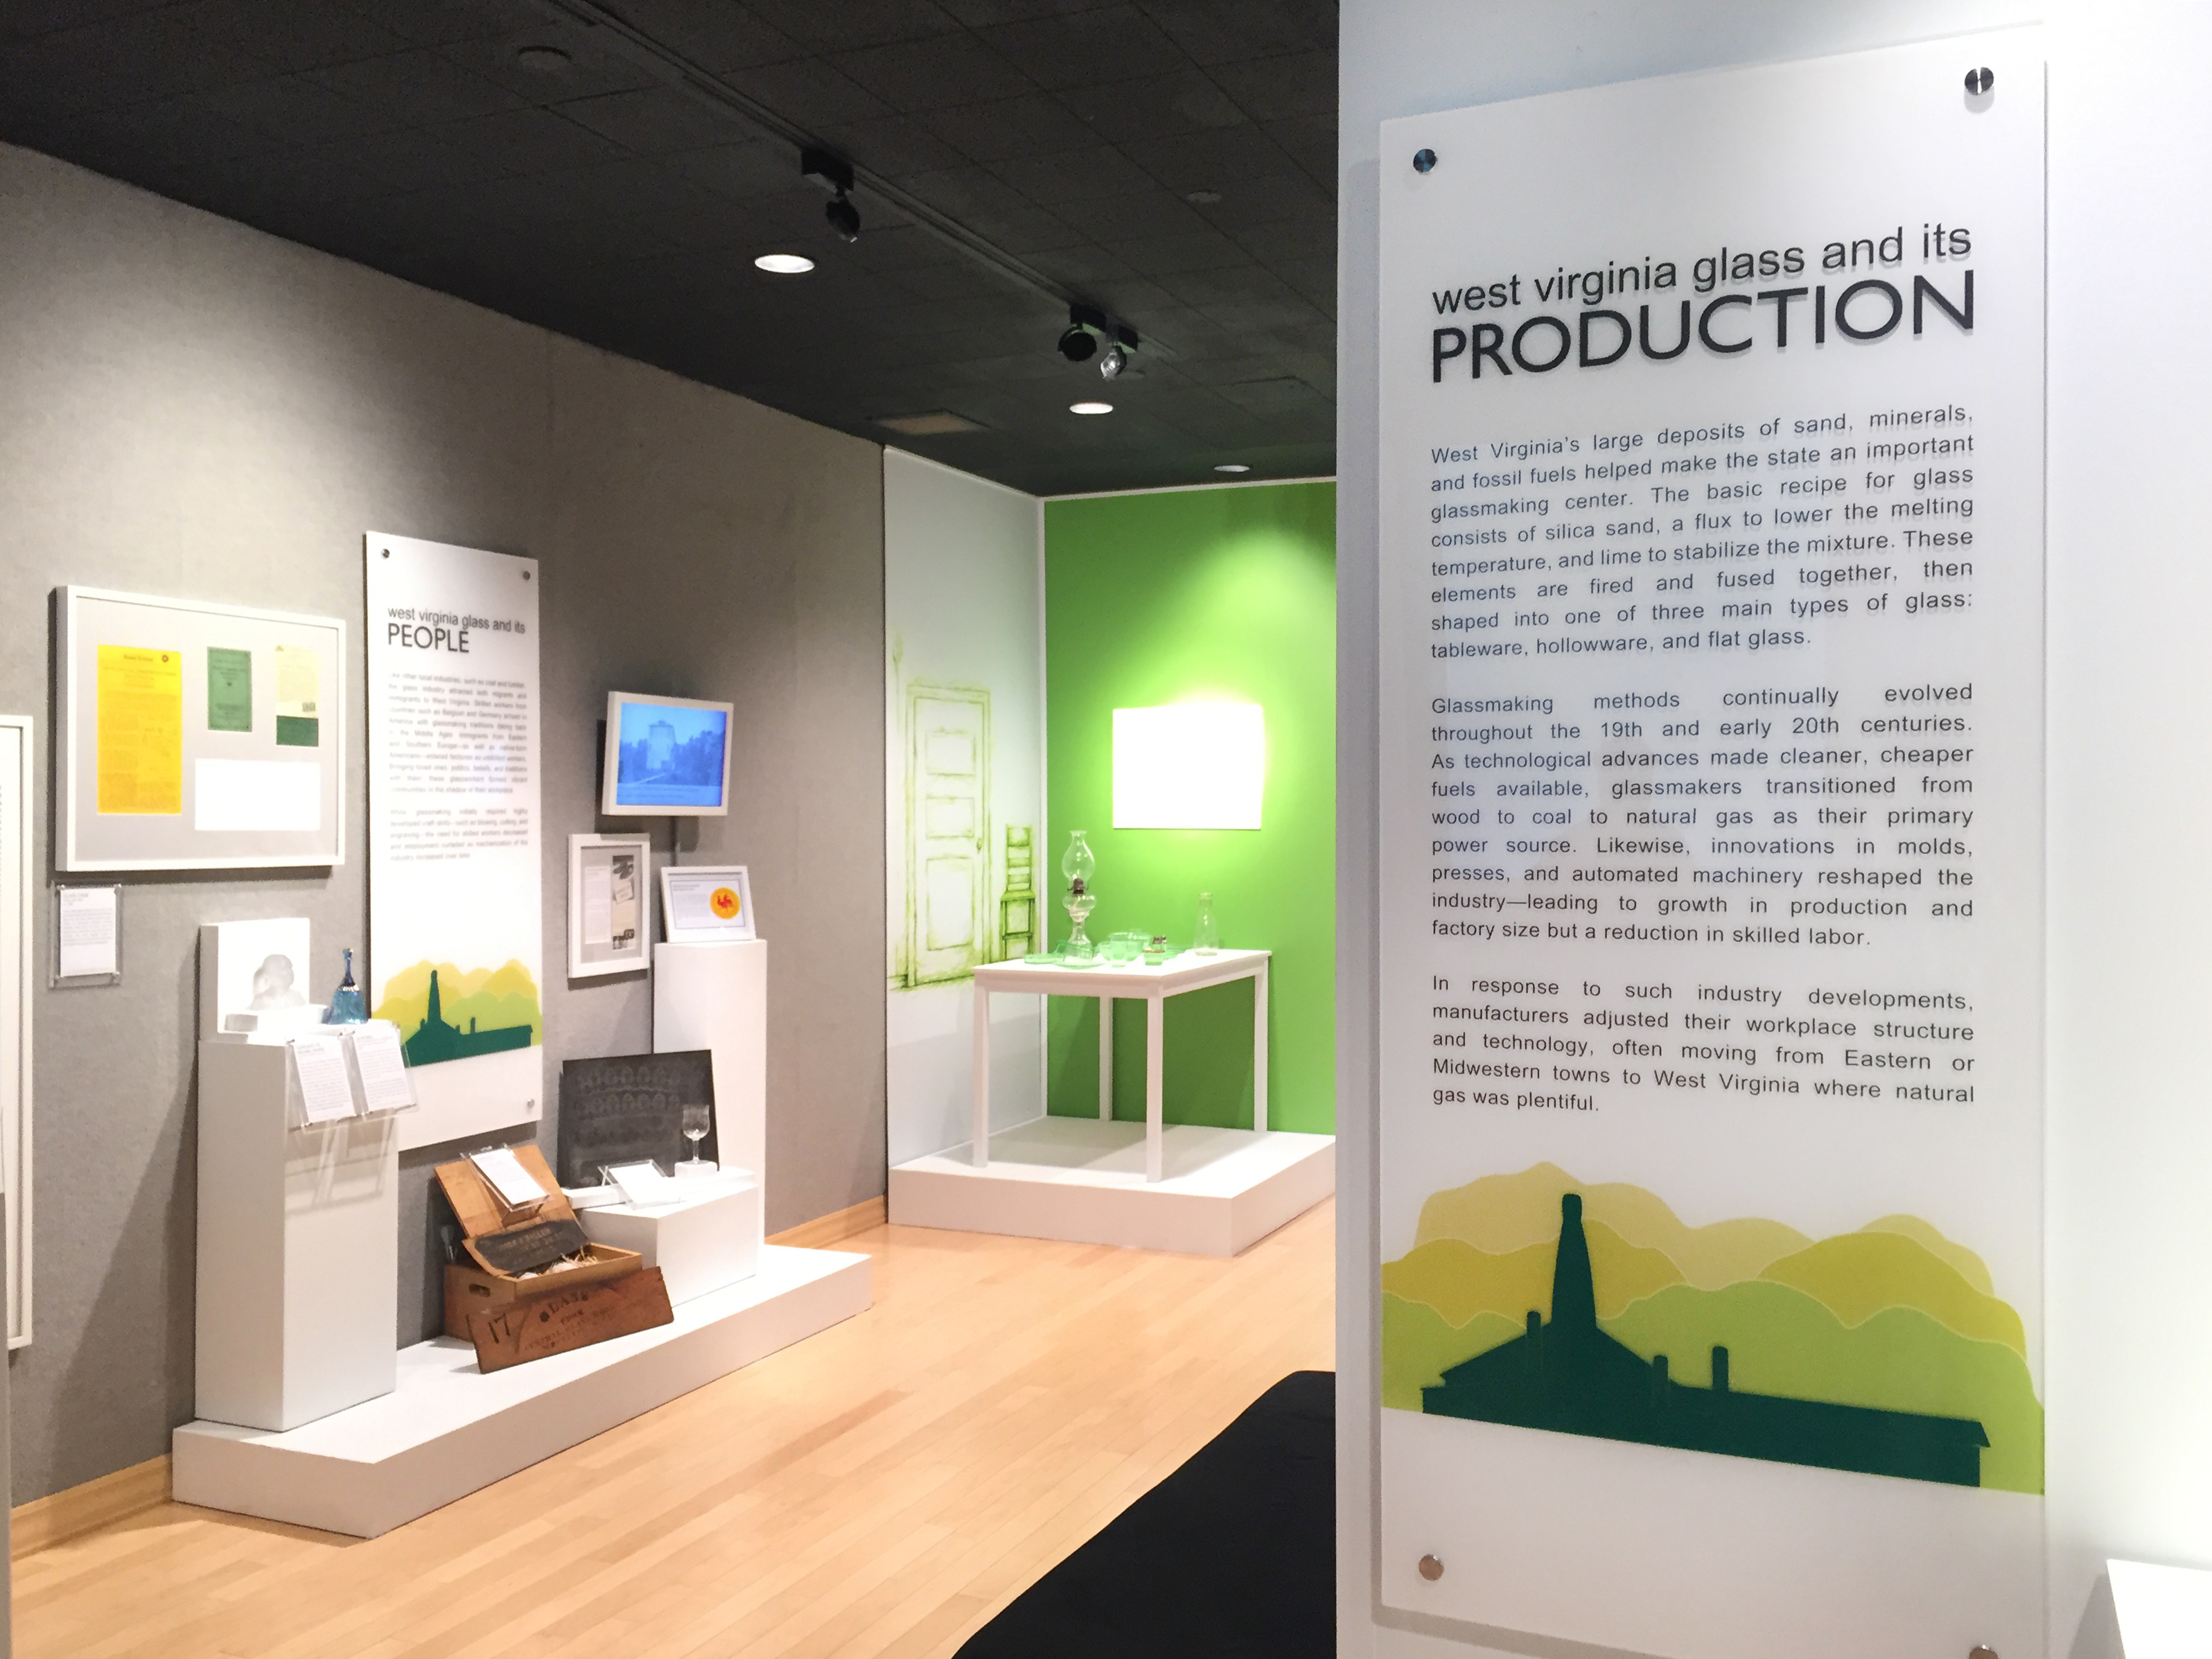 History students at WVU have helped curate exhibits such as the 2016-2017 exhibit, Molded in the Mountains: The Glass Industry in West Virginia.